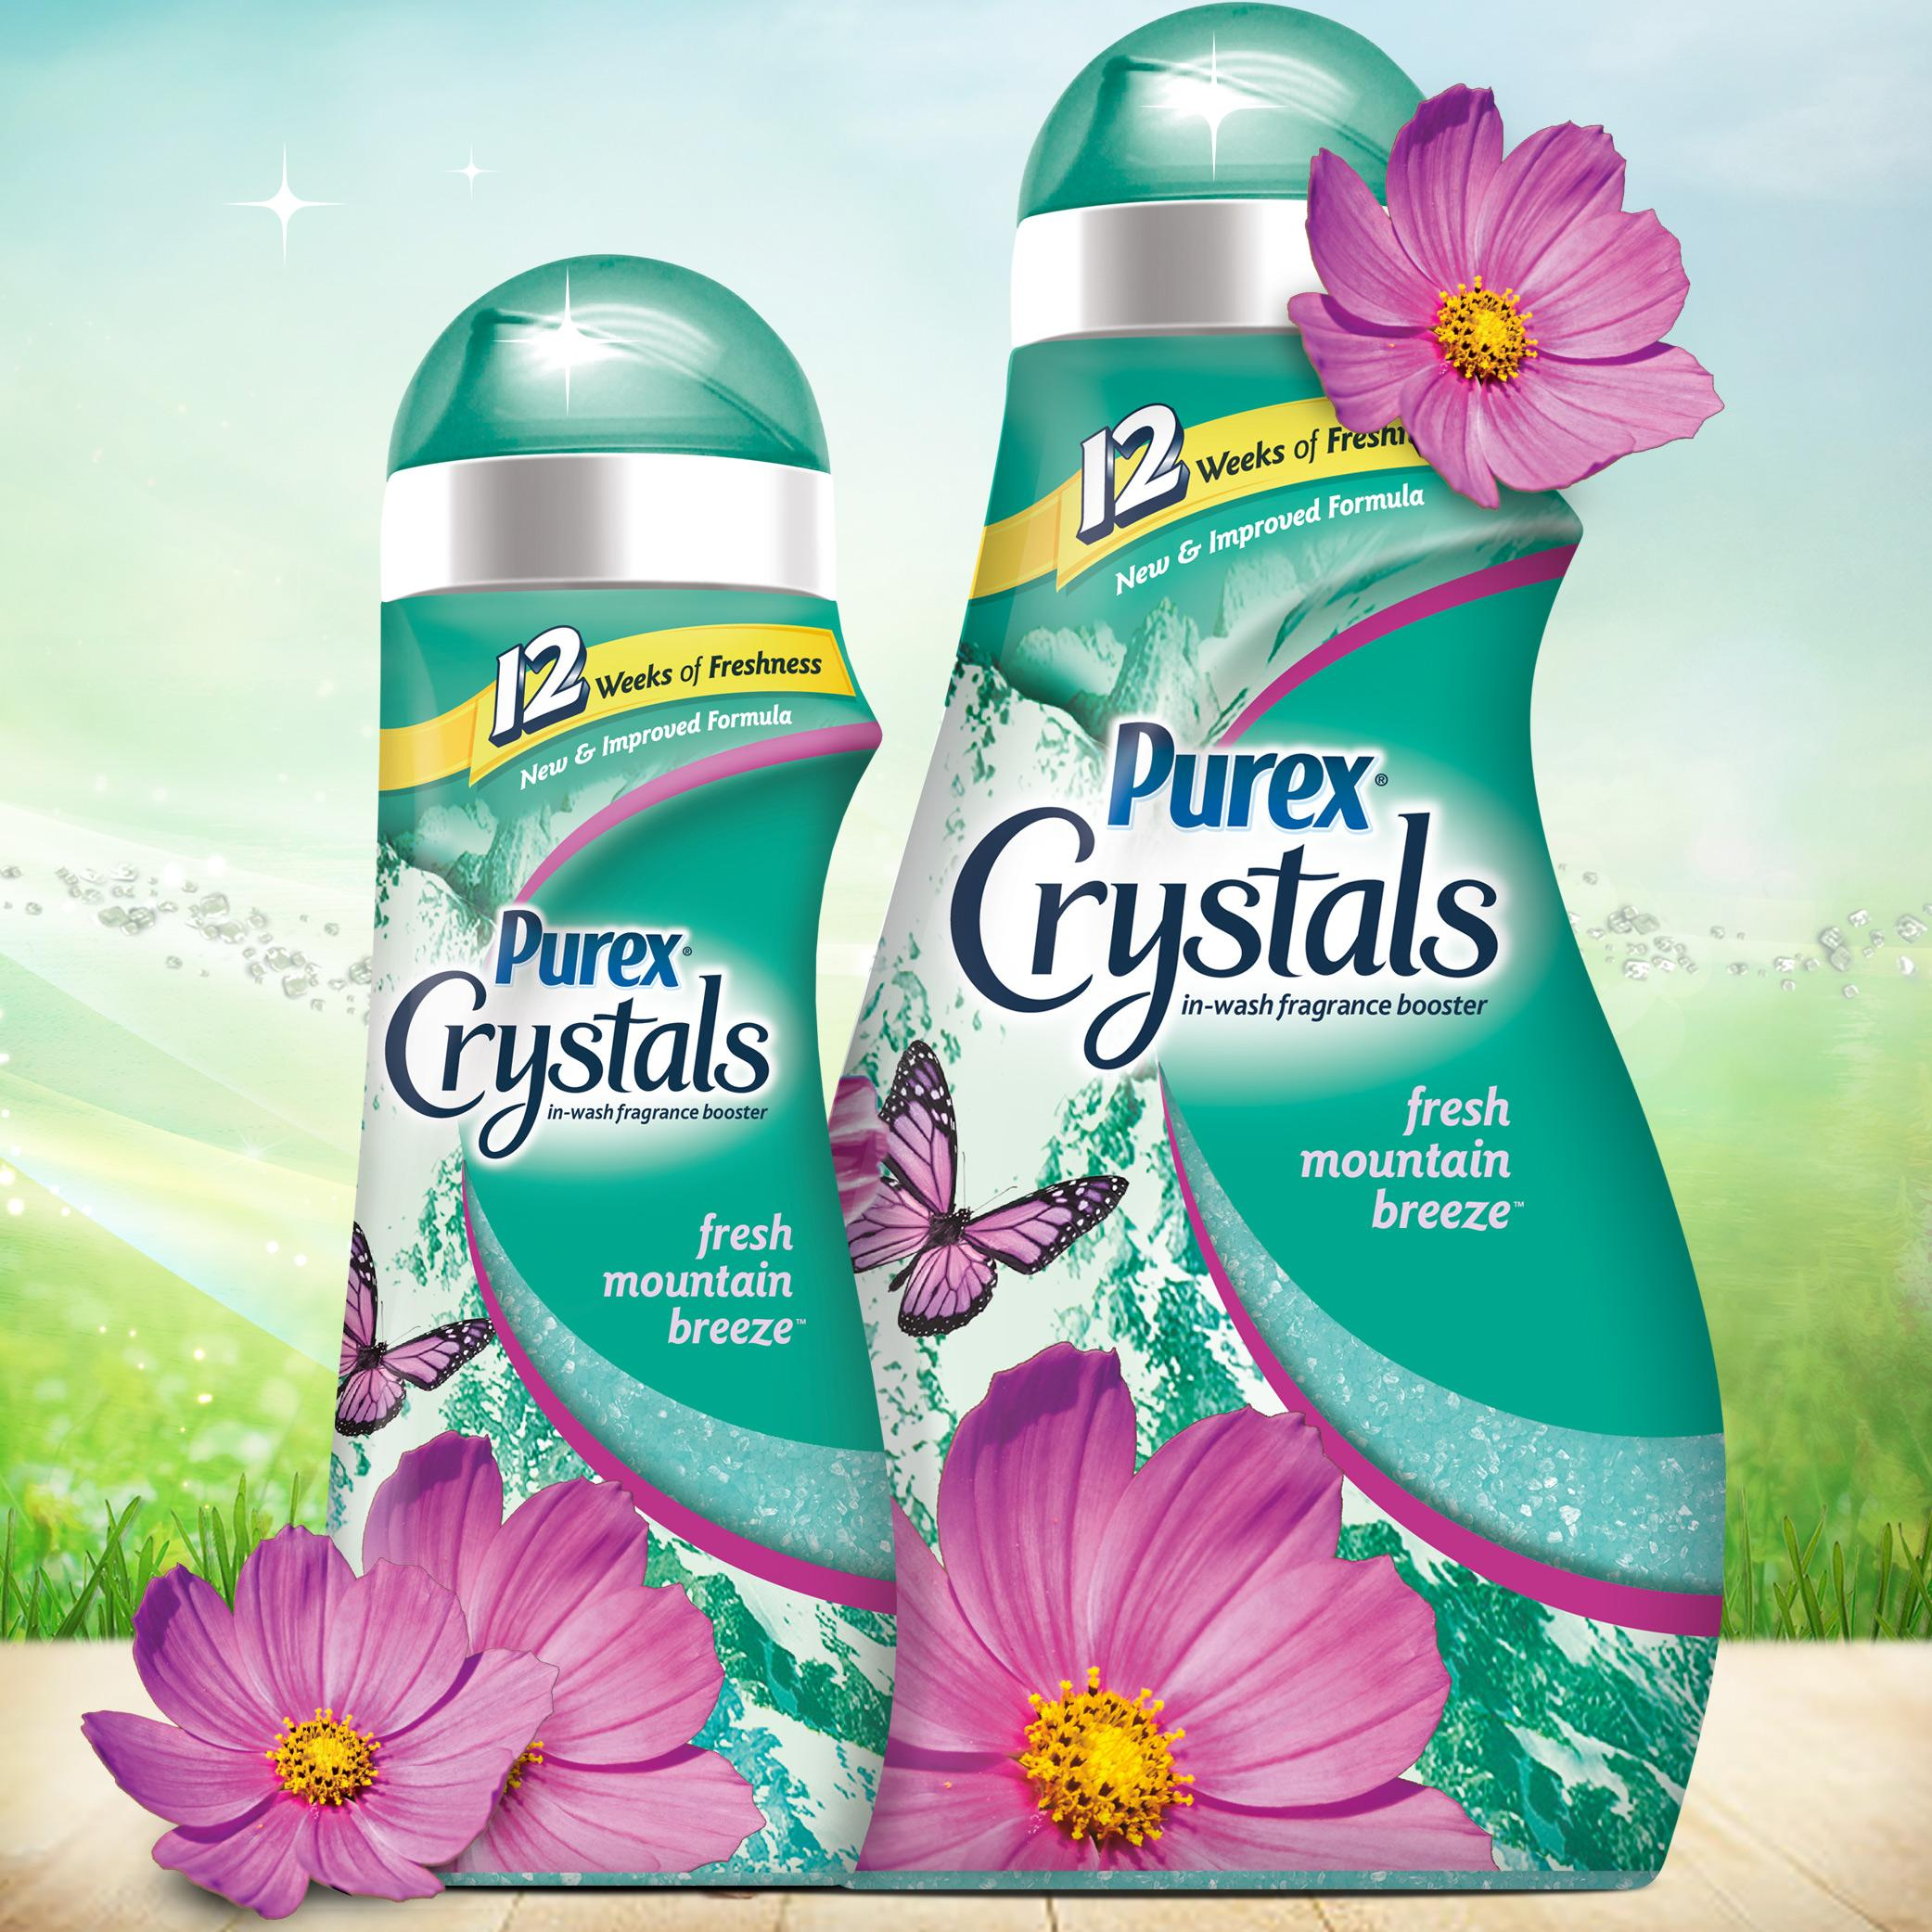 how to use purex crystals in wash fragrance booster